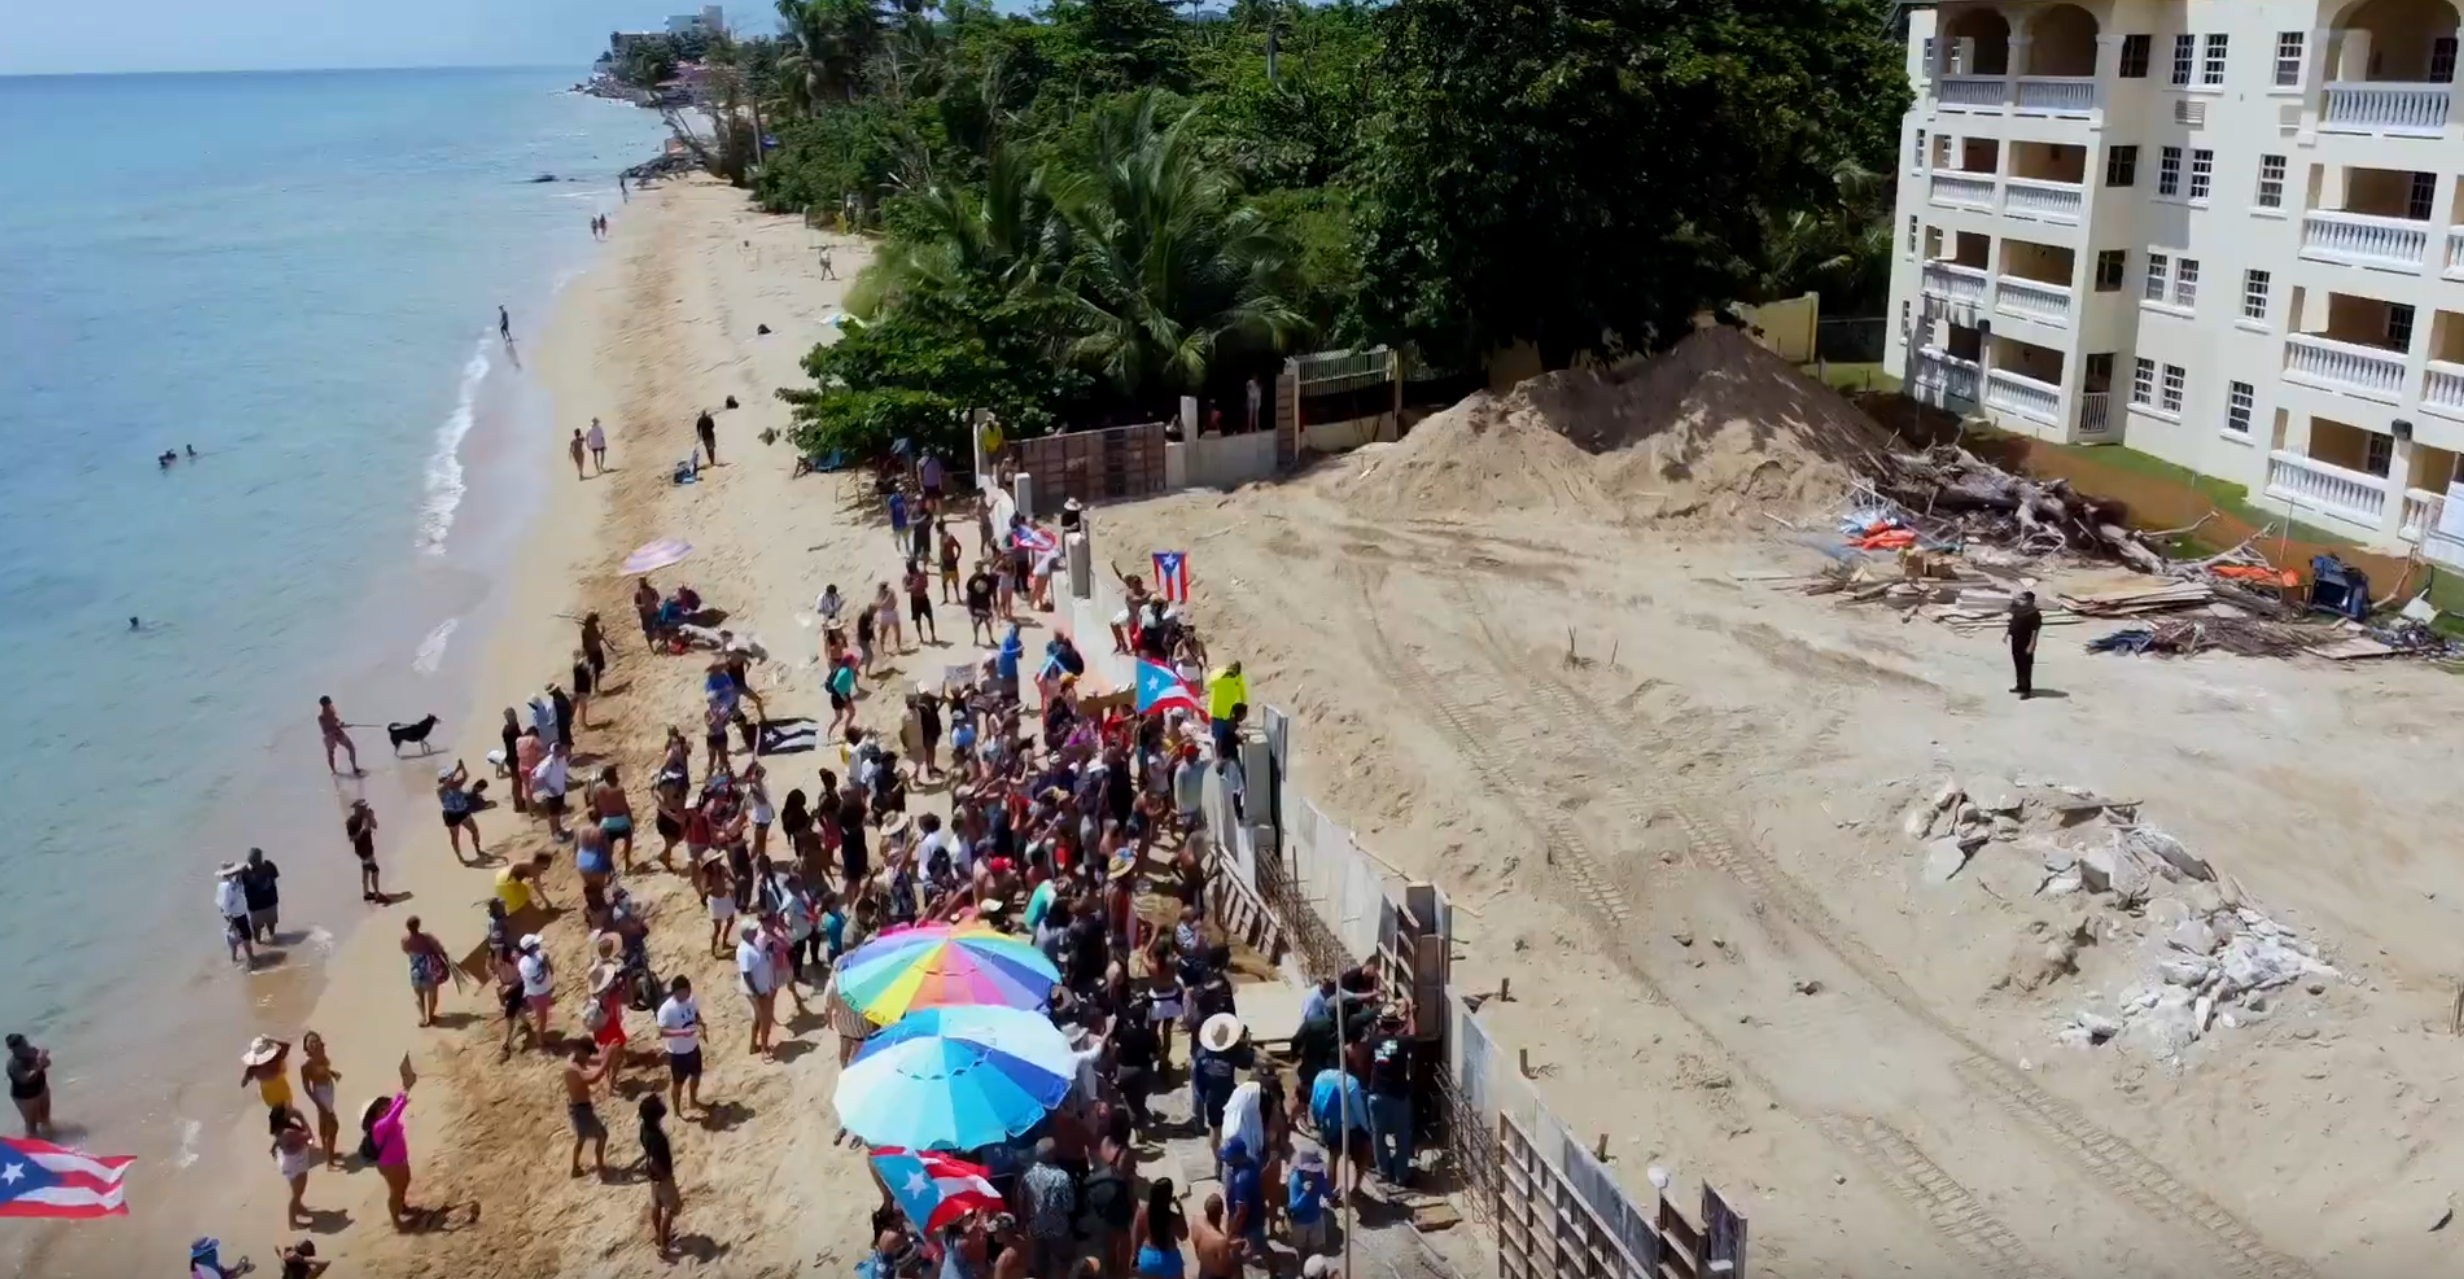 Protesters in the municipality of Rincón on the western coast of Puerto Rico have established a permanent presence at the construction site of a swimming pool that is being rebuilt after hurricane Maria destroyed it in 2017. Opponents of the construction say it is being built illegally. Screenshot from YouTube video uploaded by Carlos Mercado.